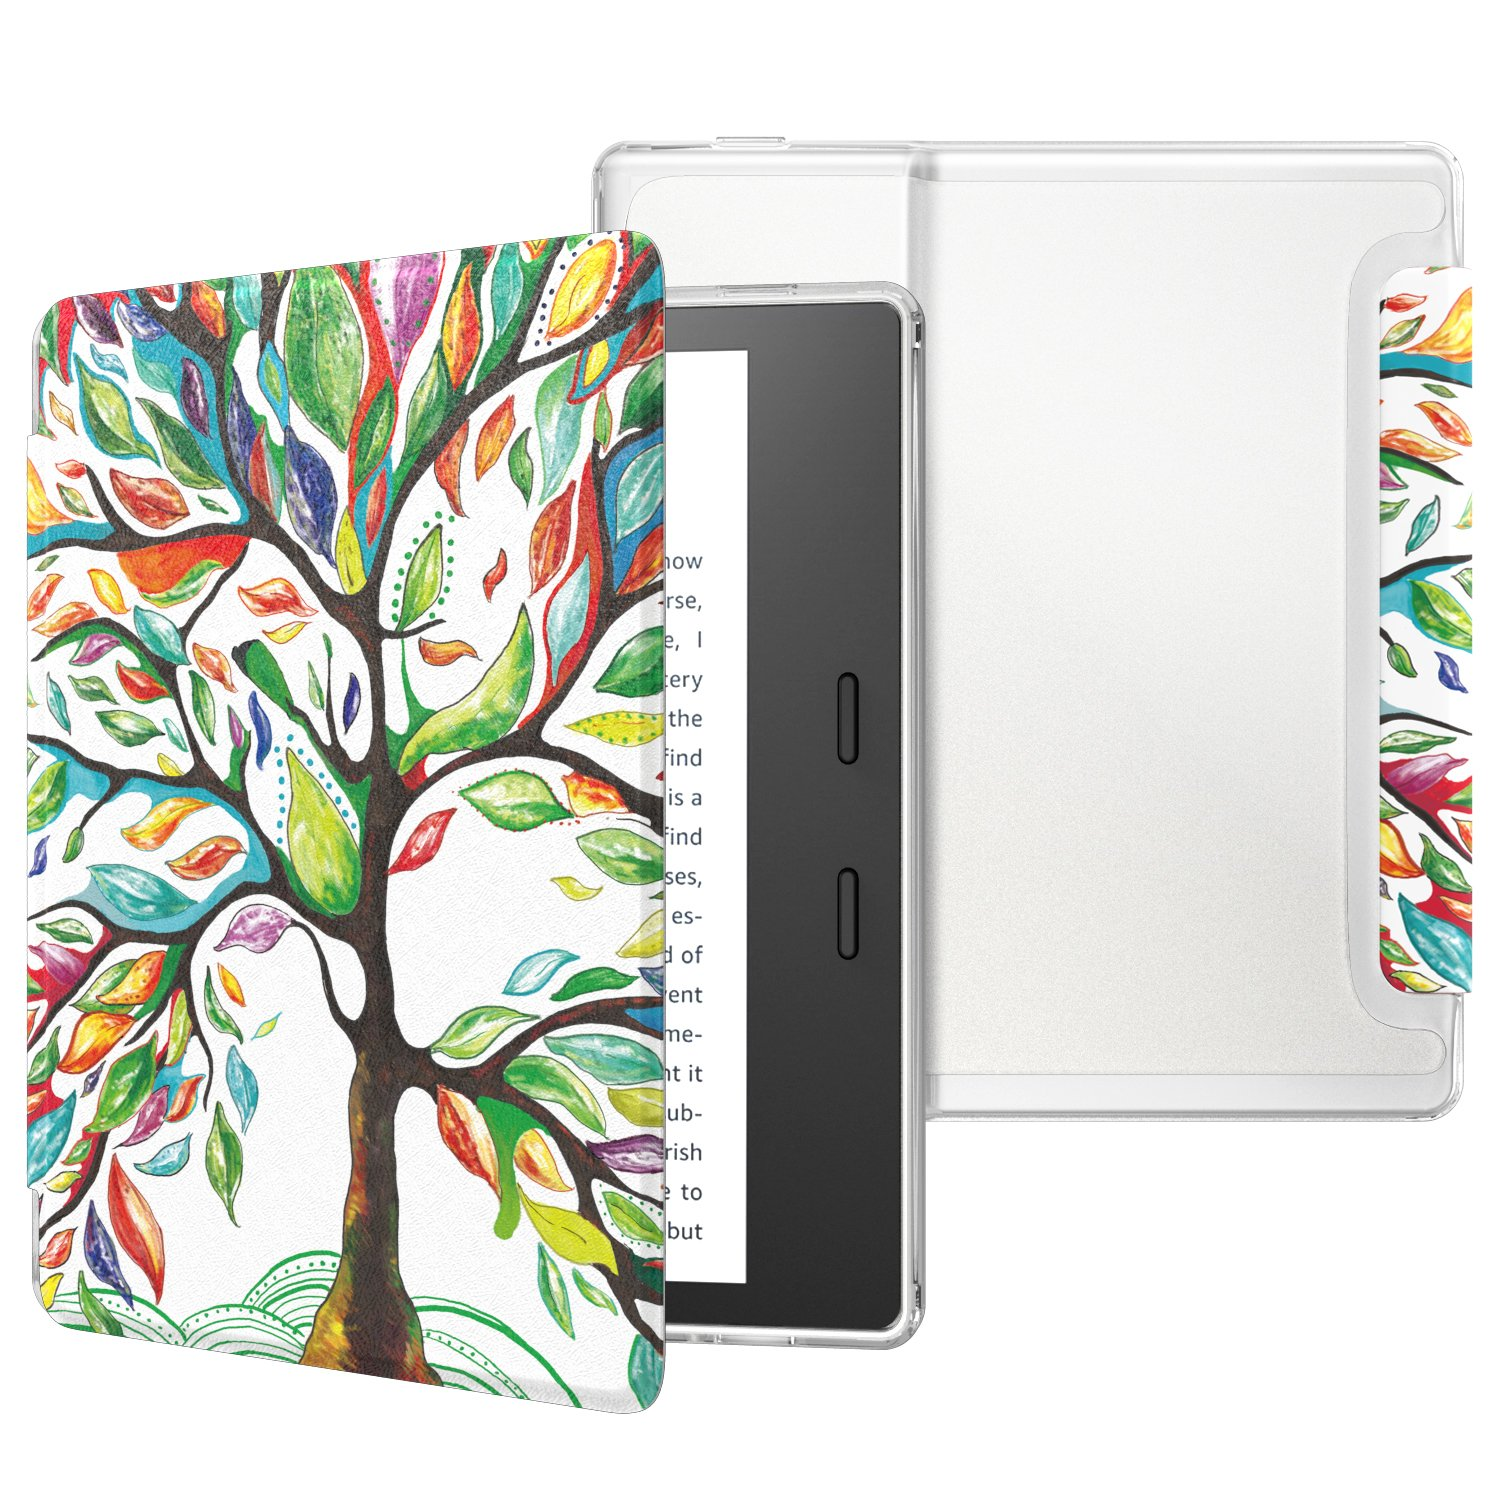 MoKo Case Fits All-New Kindle Oasis (9th and 10th Generation ONLY, 2017 and 2019 Release), Slim Lightweight Cover with Translucent Frosted Back Protector - Lucky TREE